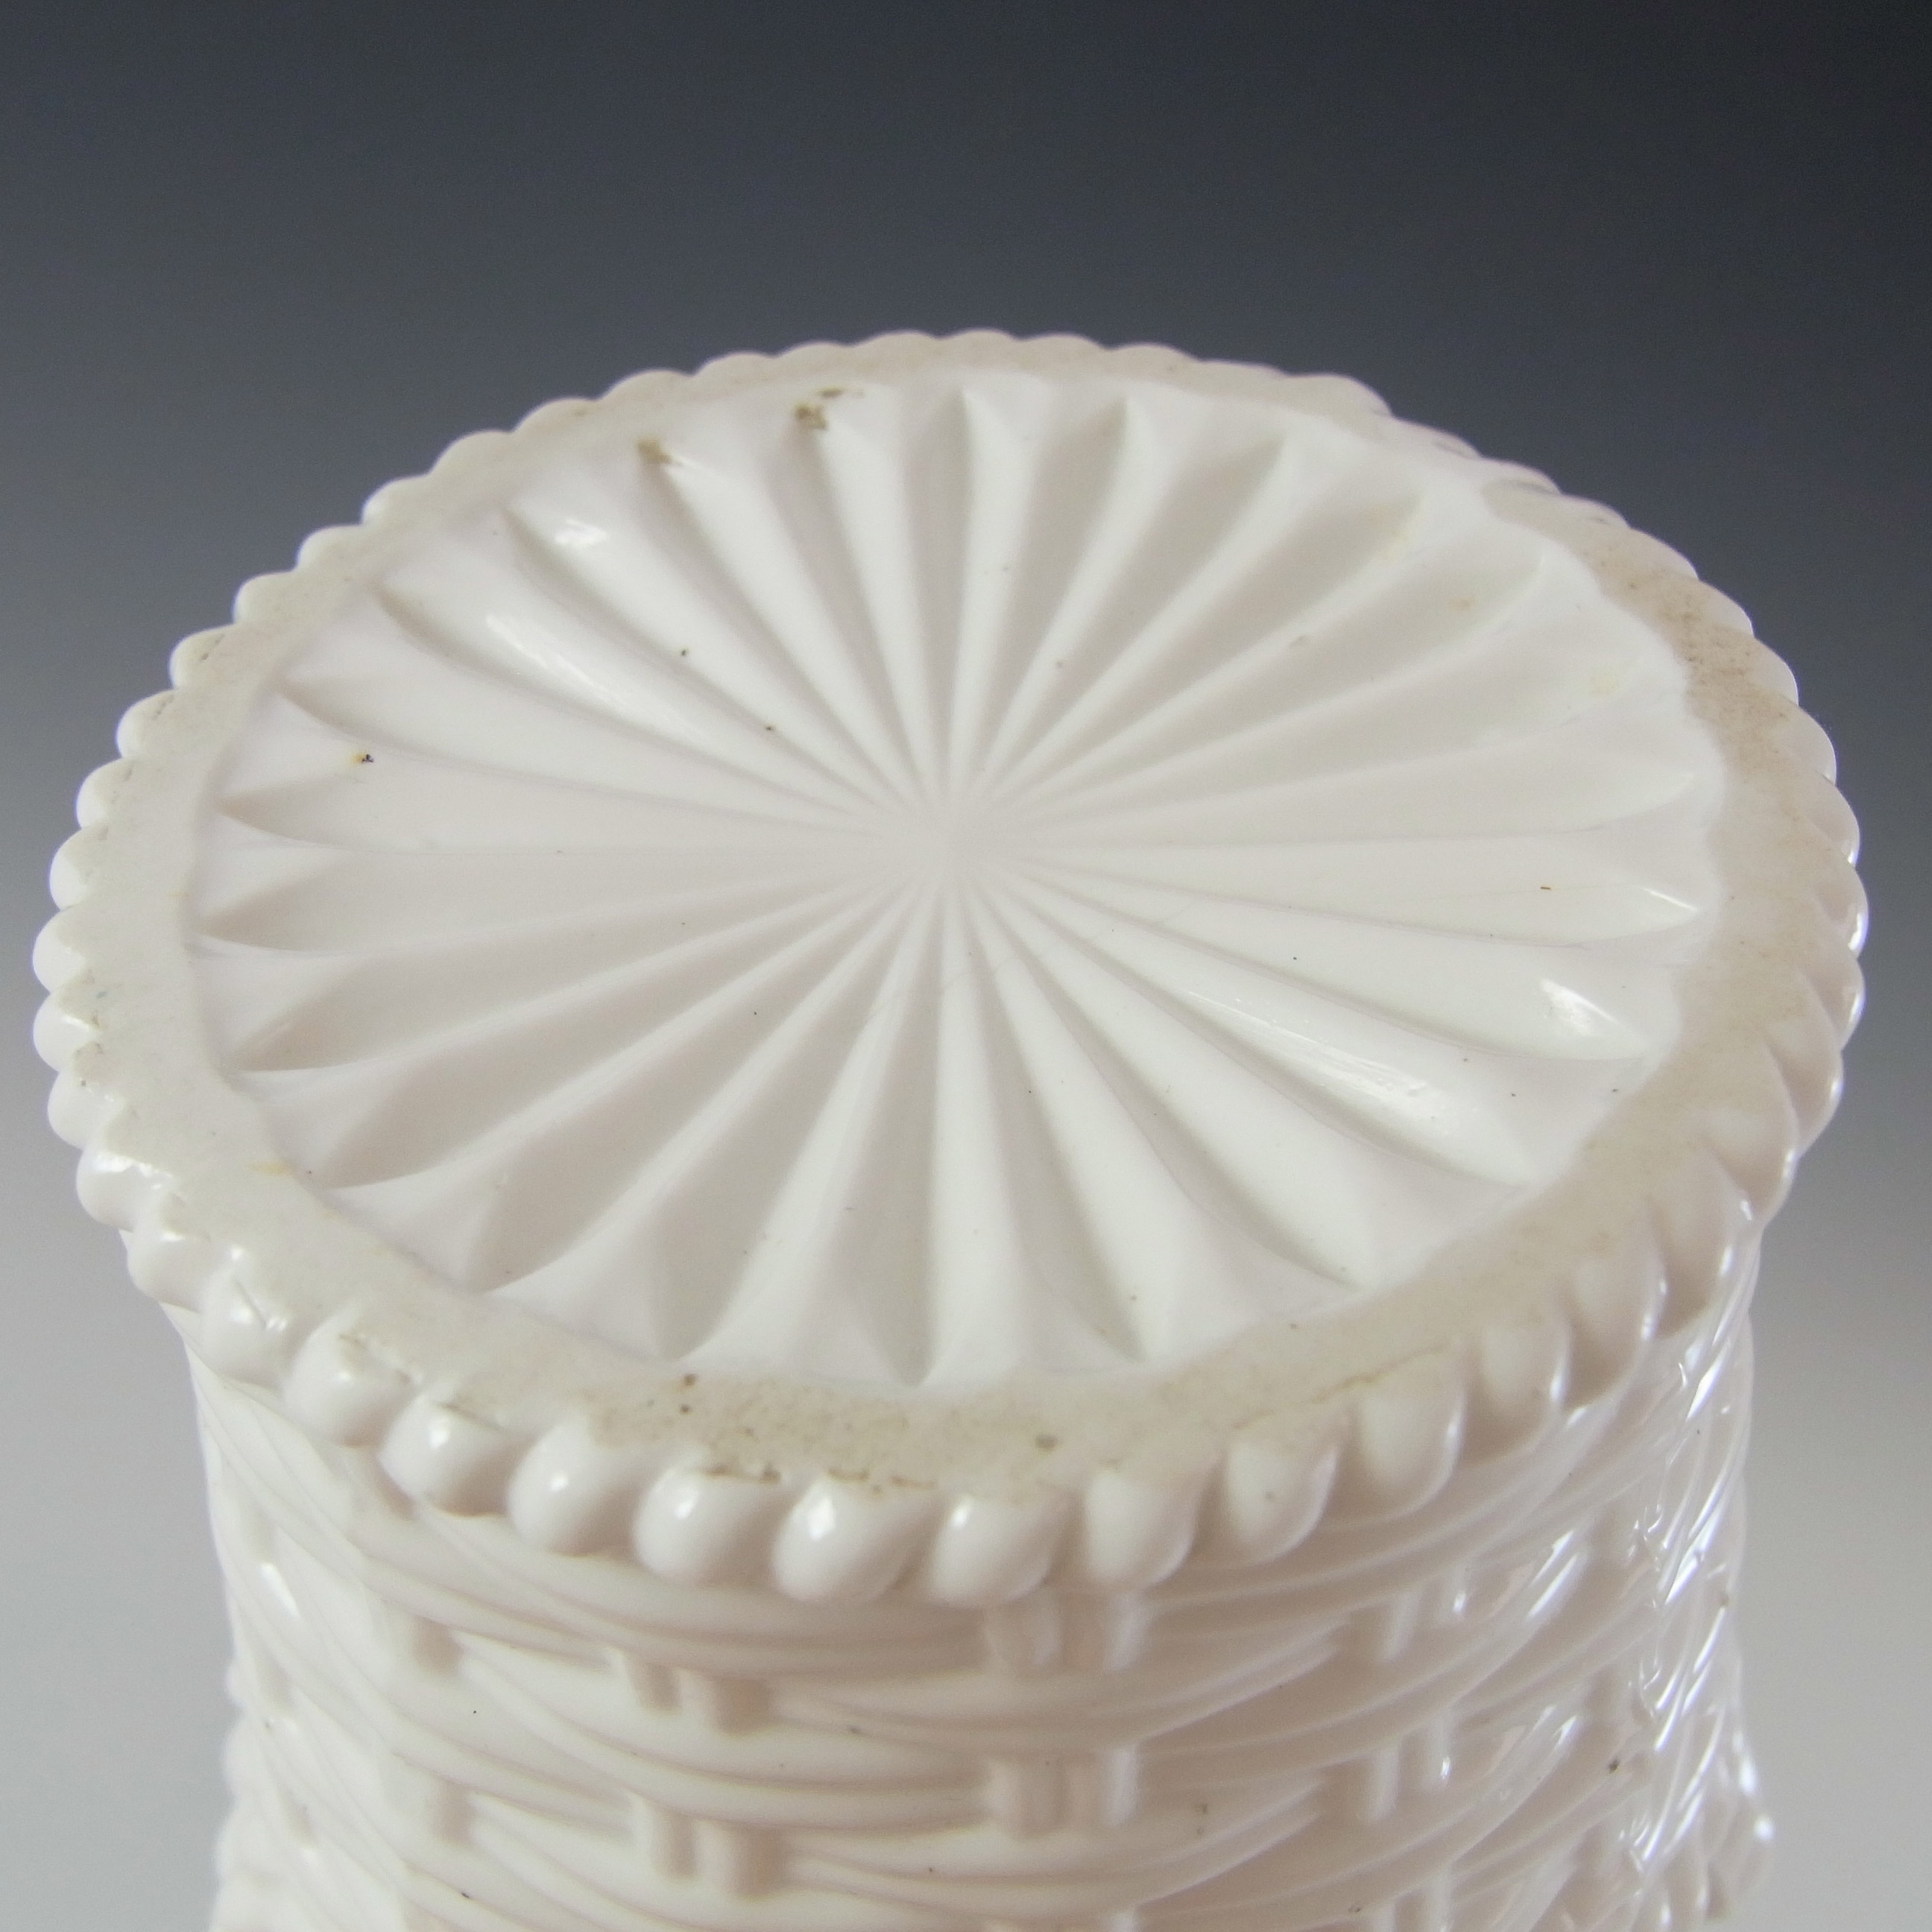 Sowerby #1102 Victorian White Milk Glass Basket Bowl - Marked - Click Image to Close